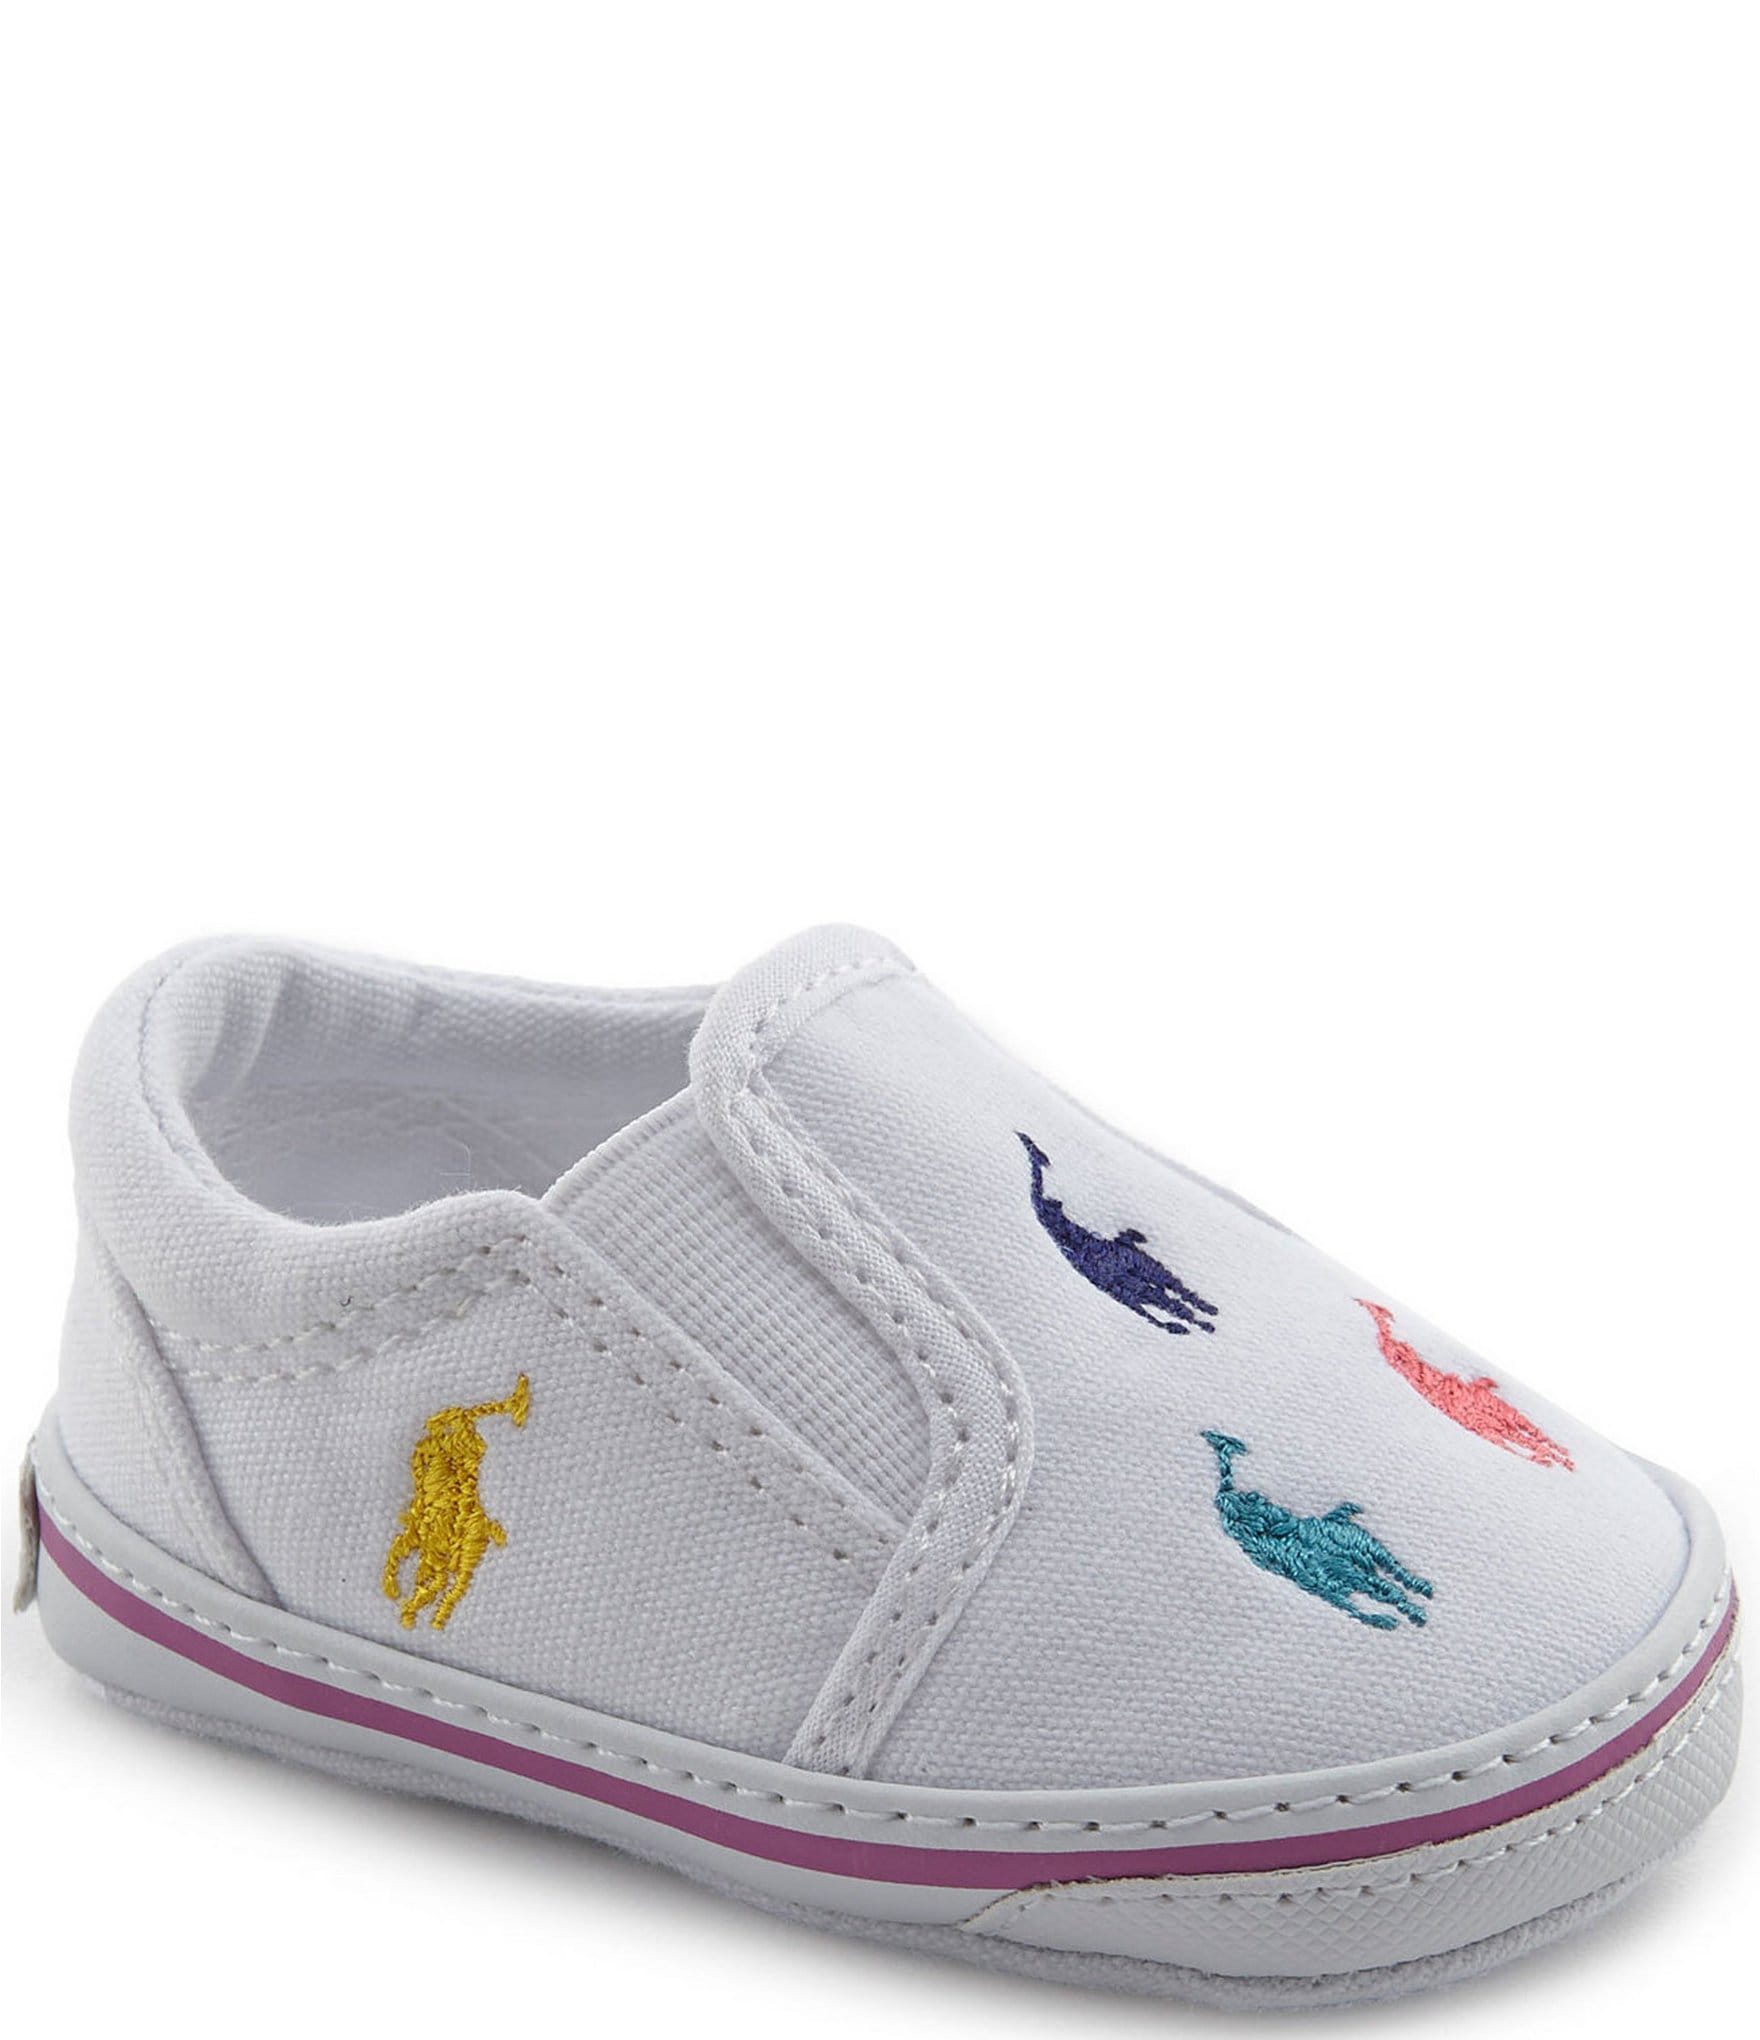 classic style fresh styles look good shoes sale Polo Ralph Lauren Girls' Bal Harbor Slip-On Oxfordcloth Sneakers